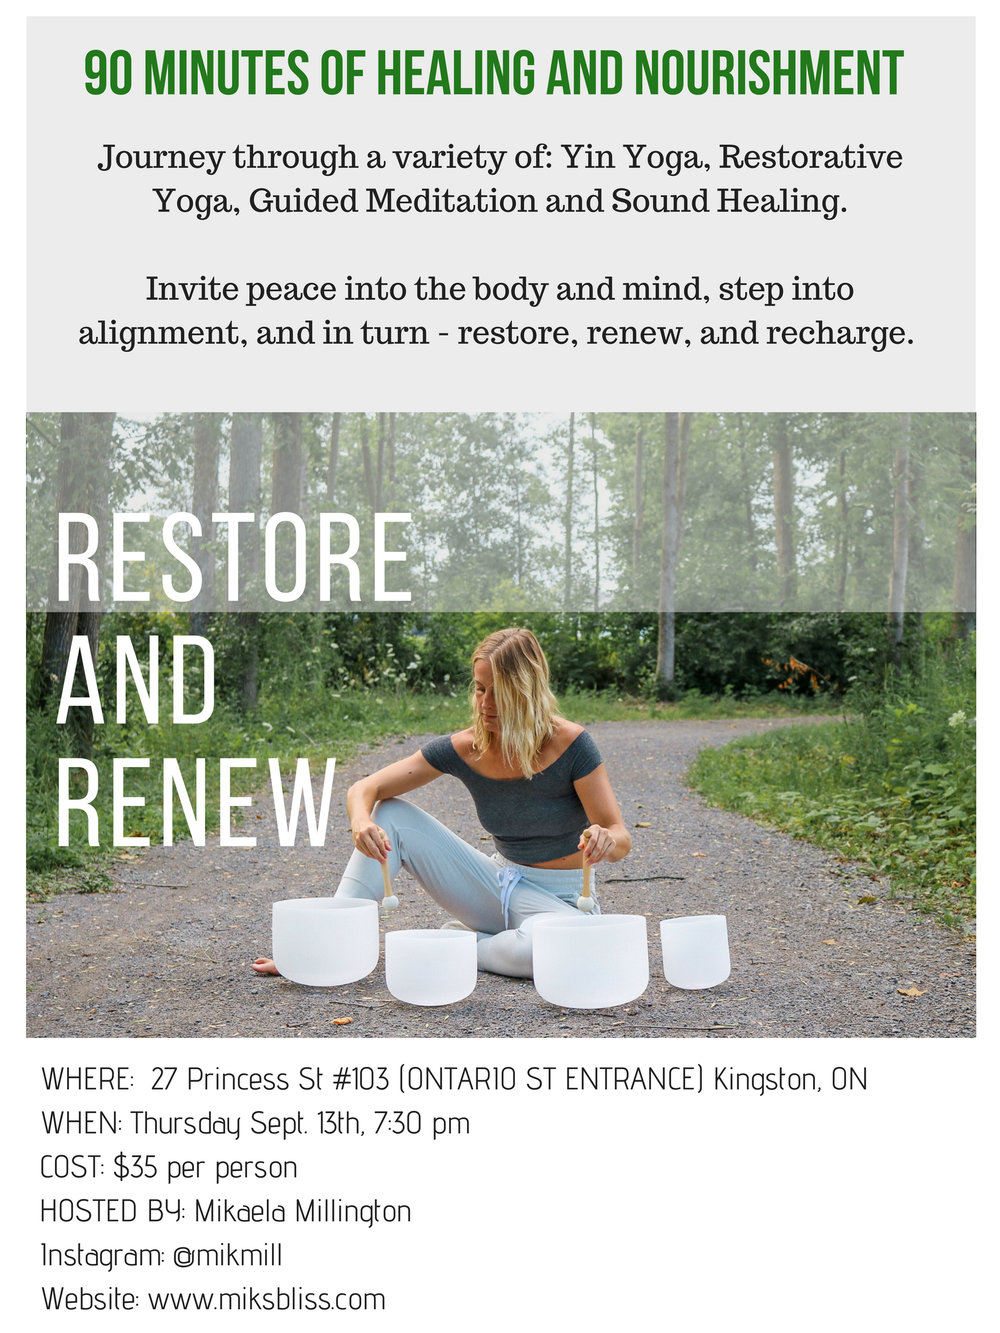 KINGSTON, ONTARIO: Moksha Yoga    THURS.September 13th, 2018 - 7:30-9:00 pm   90 minute workshop/event  heal and nourish.journey through:guided meditation, mindful and easeful movement, yin yoga (targeting deep connective tissues to release toxins and stagnant energy) restorative yoga (gentle postures supported by props - slowing down and tuning in), and sound healing (Mikaela plays the ukulele and quartz singing bowls - singing bowls: sound vibrations impact our nervous system, engaging our relaxation reflex and inhibiting the stress or pain response.